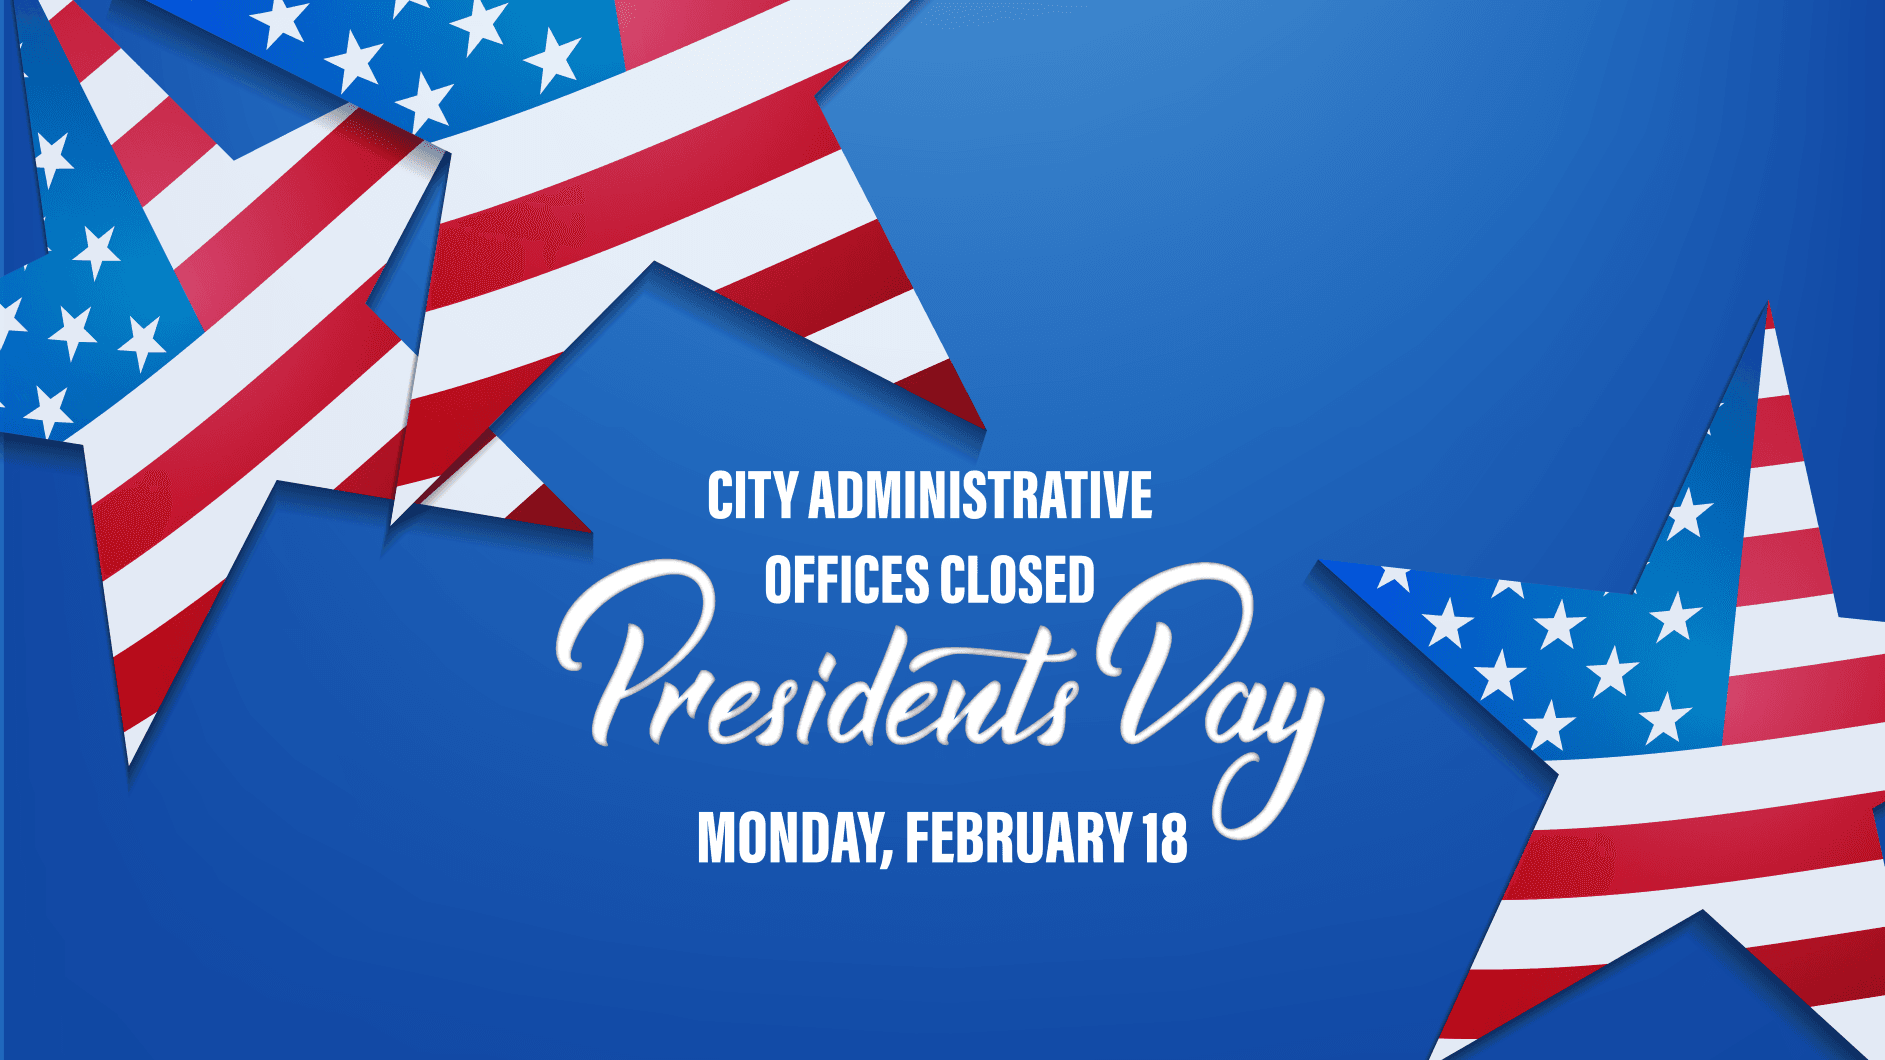 City Administrative Offices Closed for Presidents Day Monday, February 18